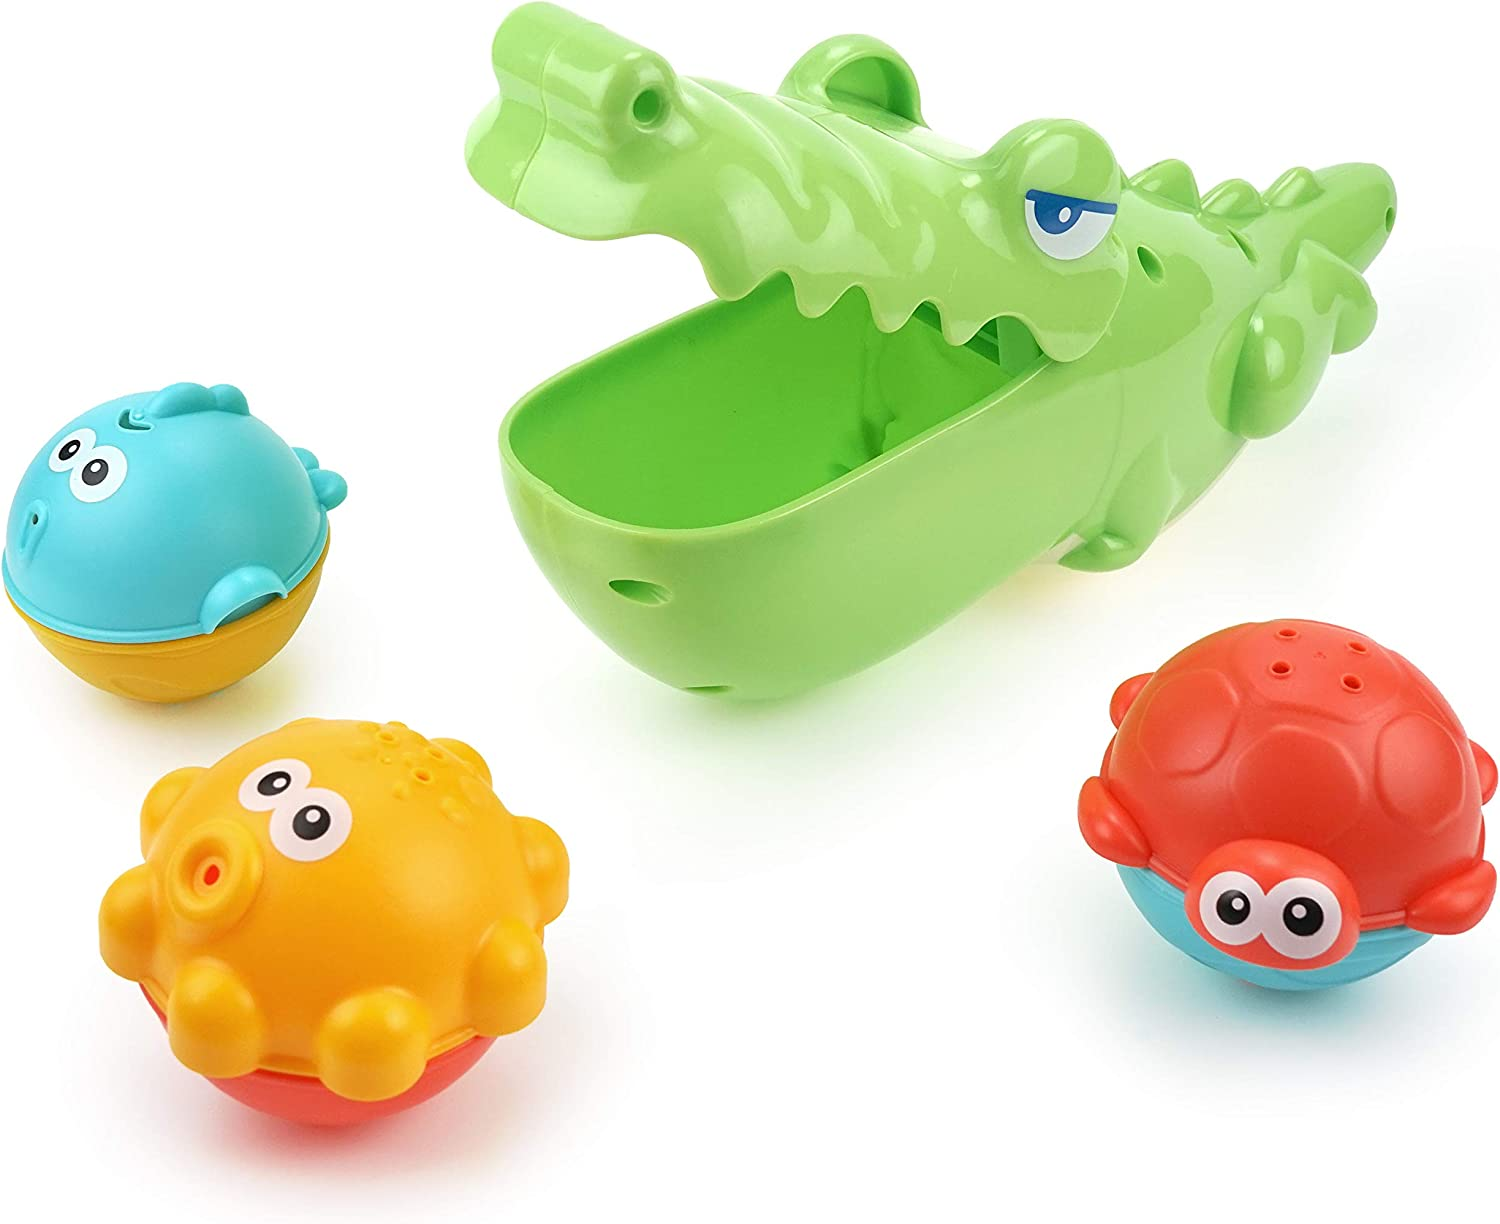 Hungry Big Mouth Crocodile Grabber with 3 Animal Sprinkler Balls 4pcs DUCKBOXX XX Bath Toys Set